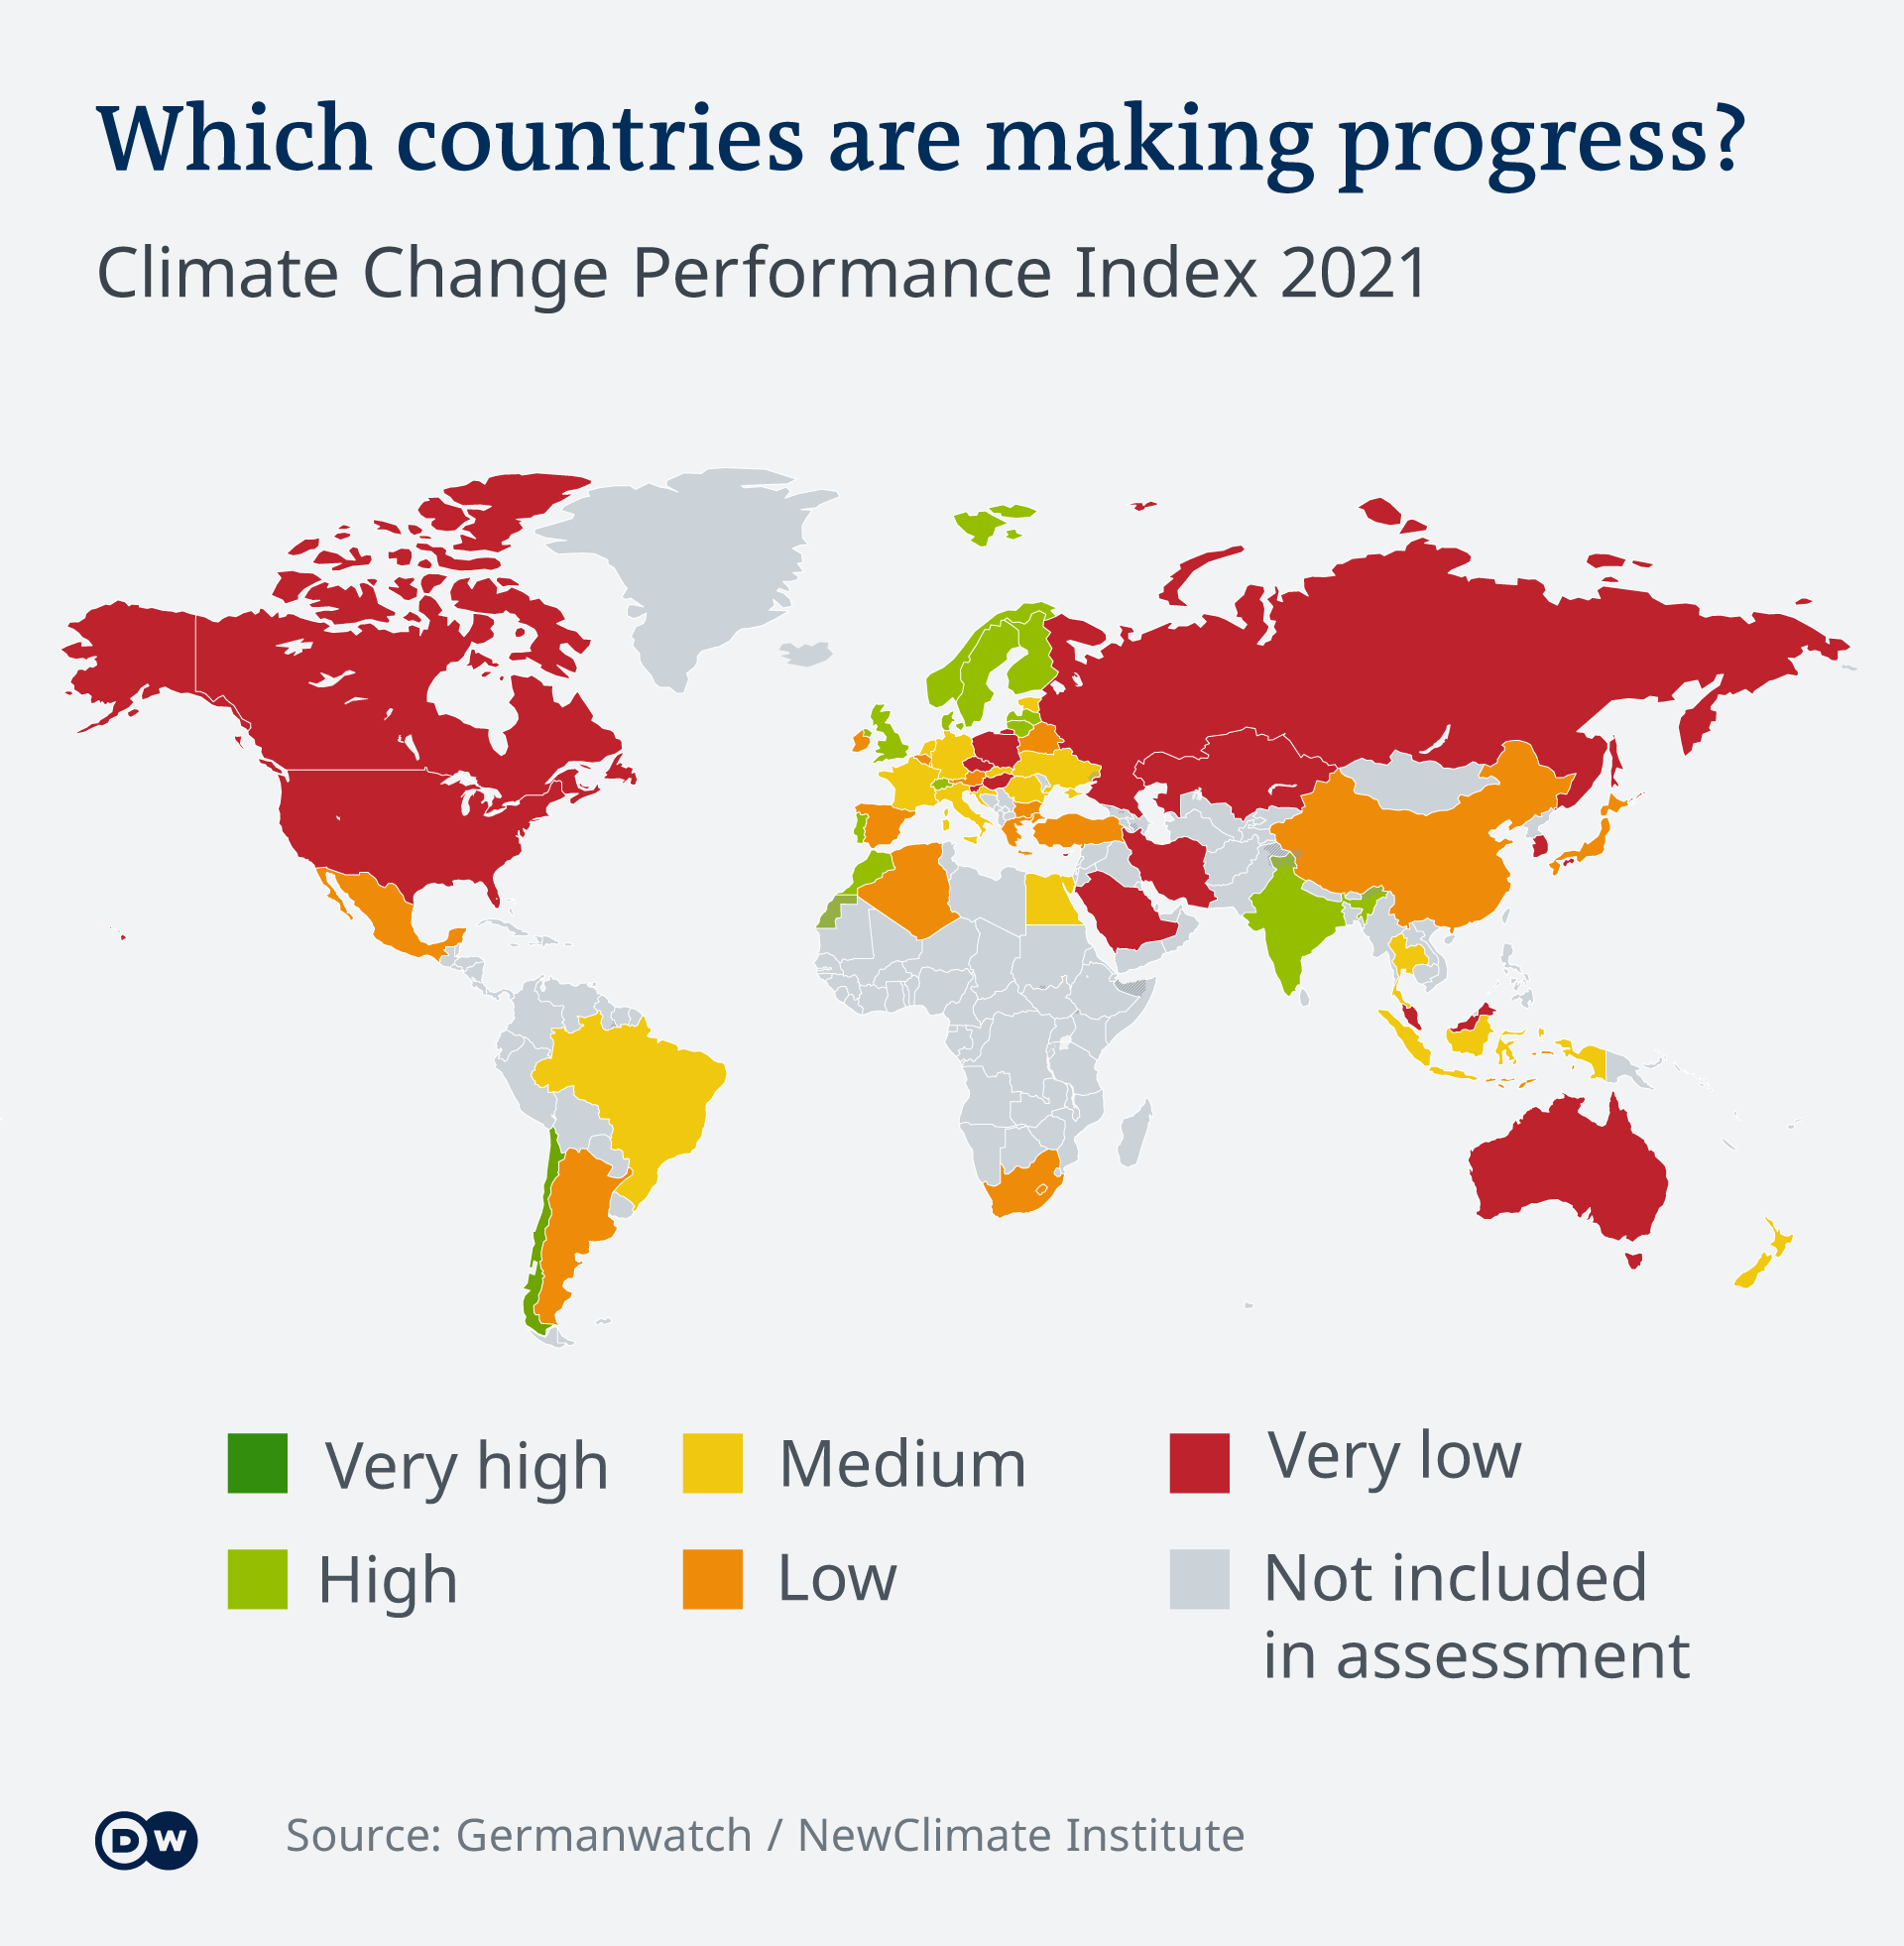 Map showing different countries' progress on climate performance